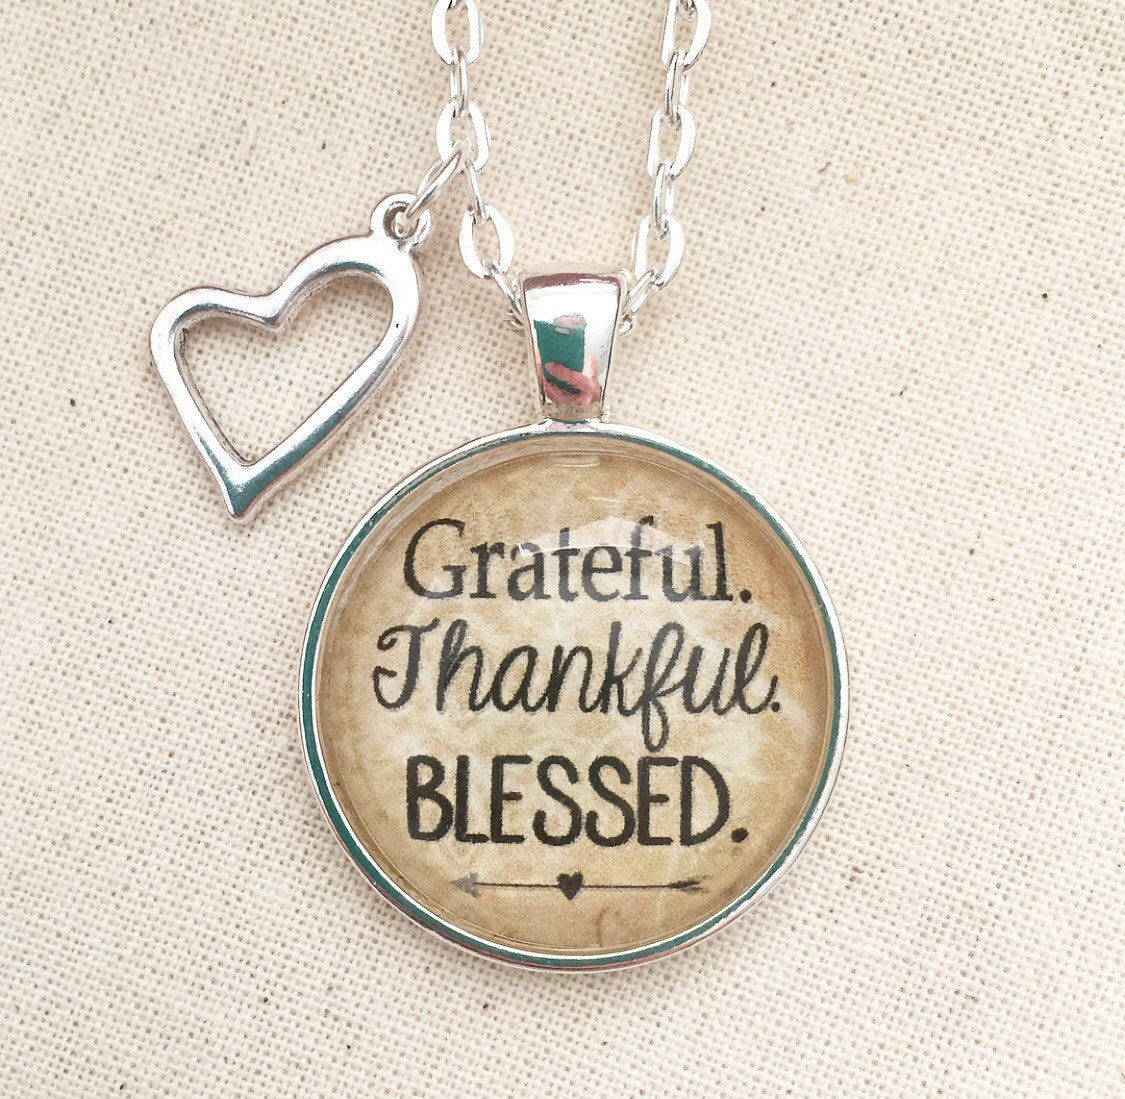 Grateful. Thankful. Blessed Pendant Necklace - Redeemed Jewelry